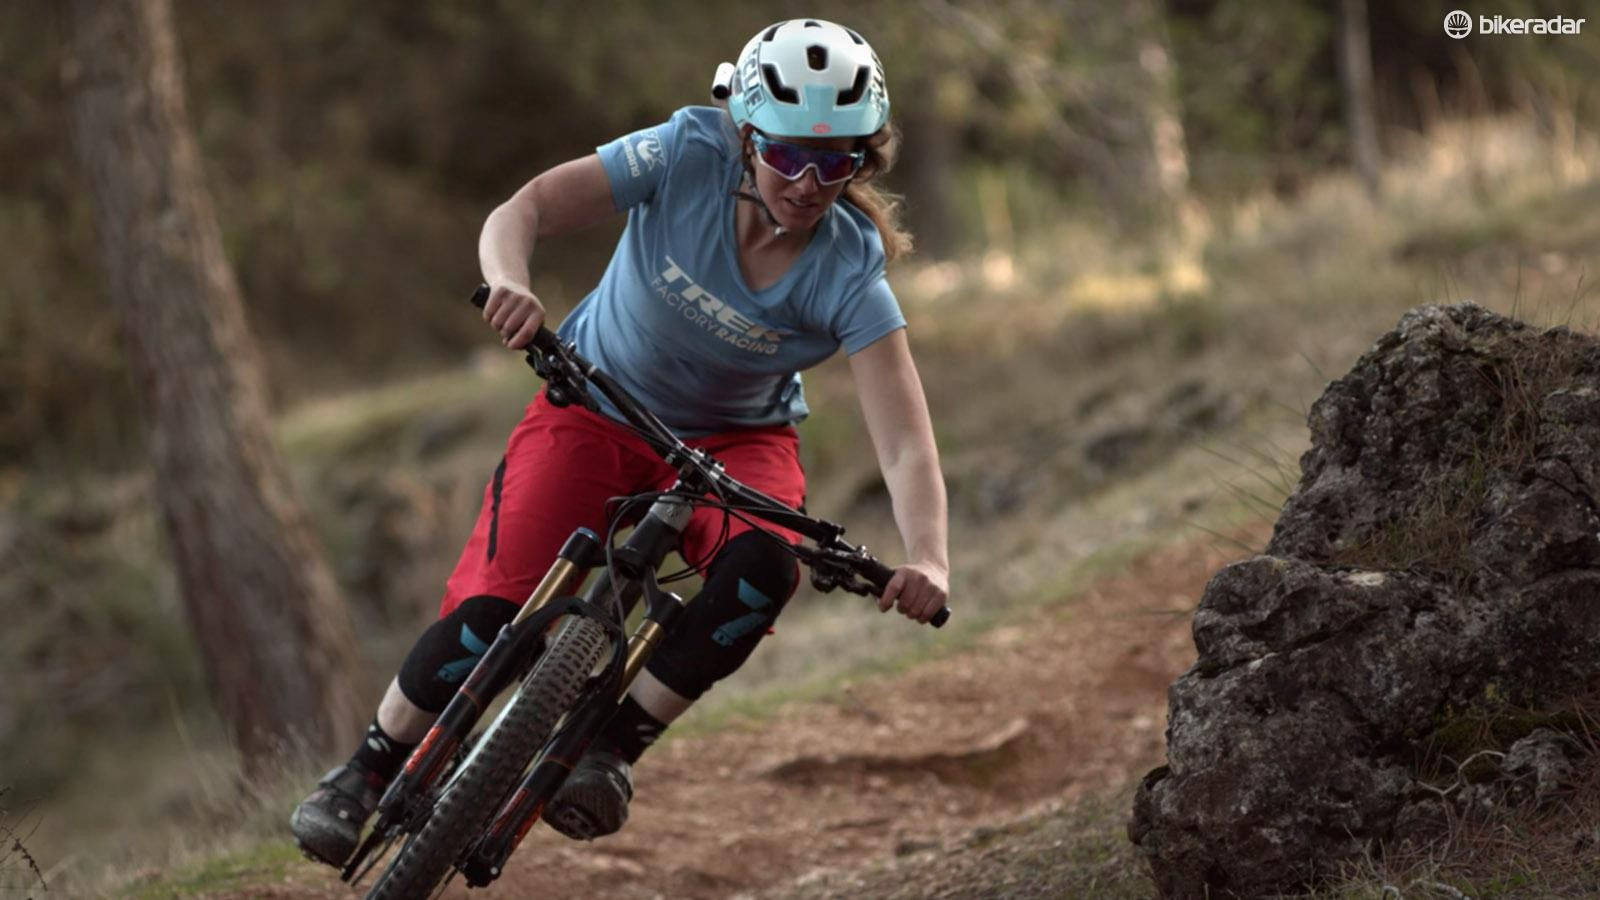 It's refreshing to see a film give talented female riders screen time